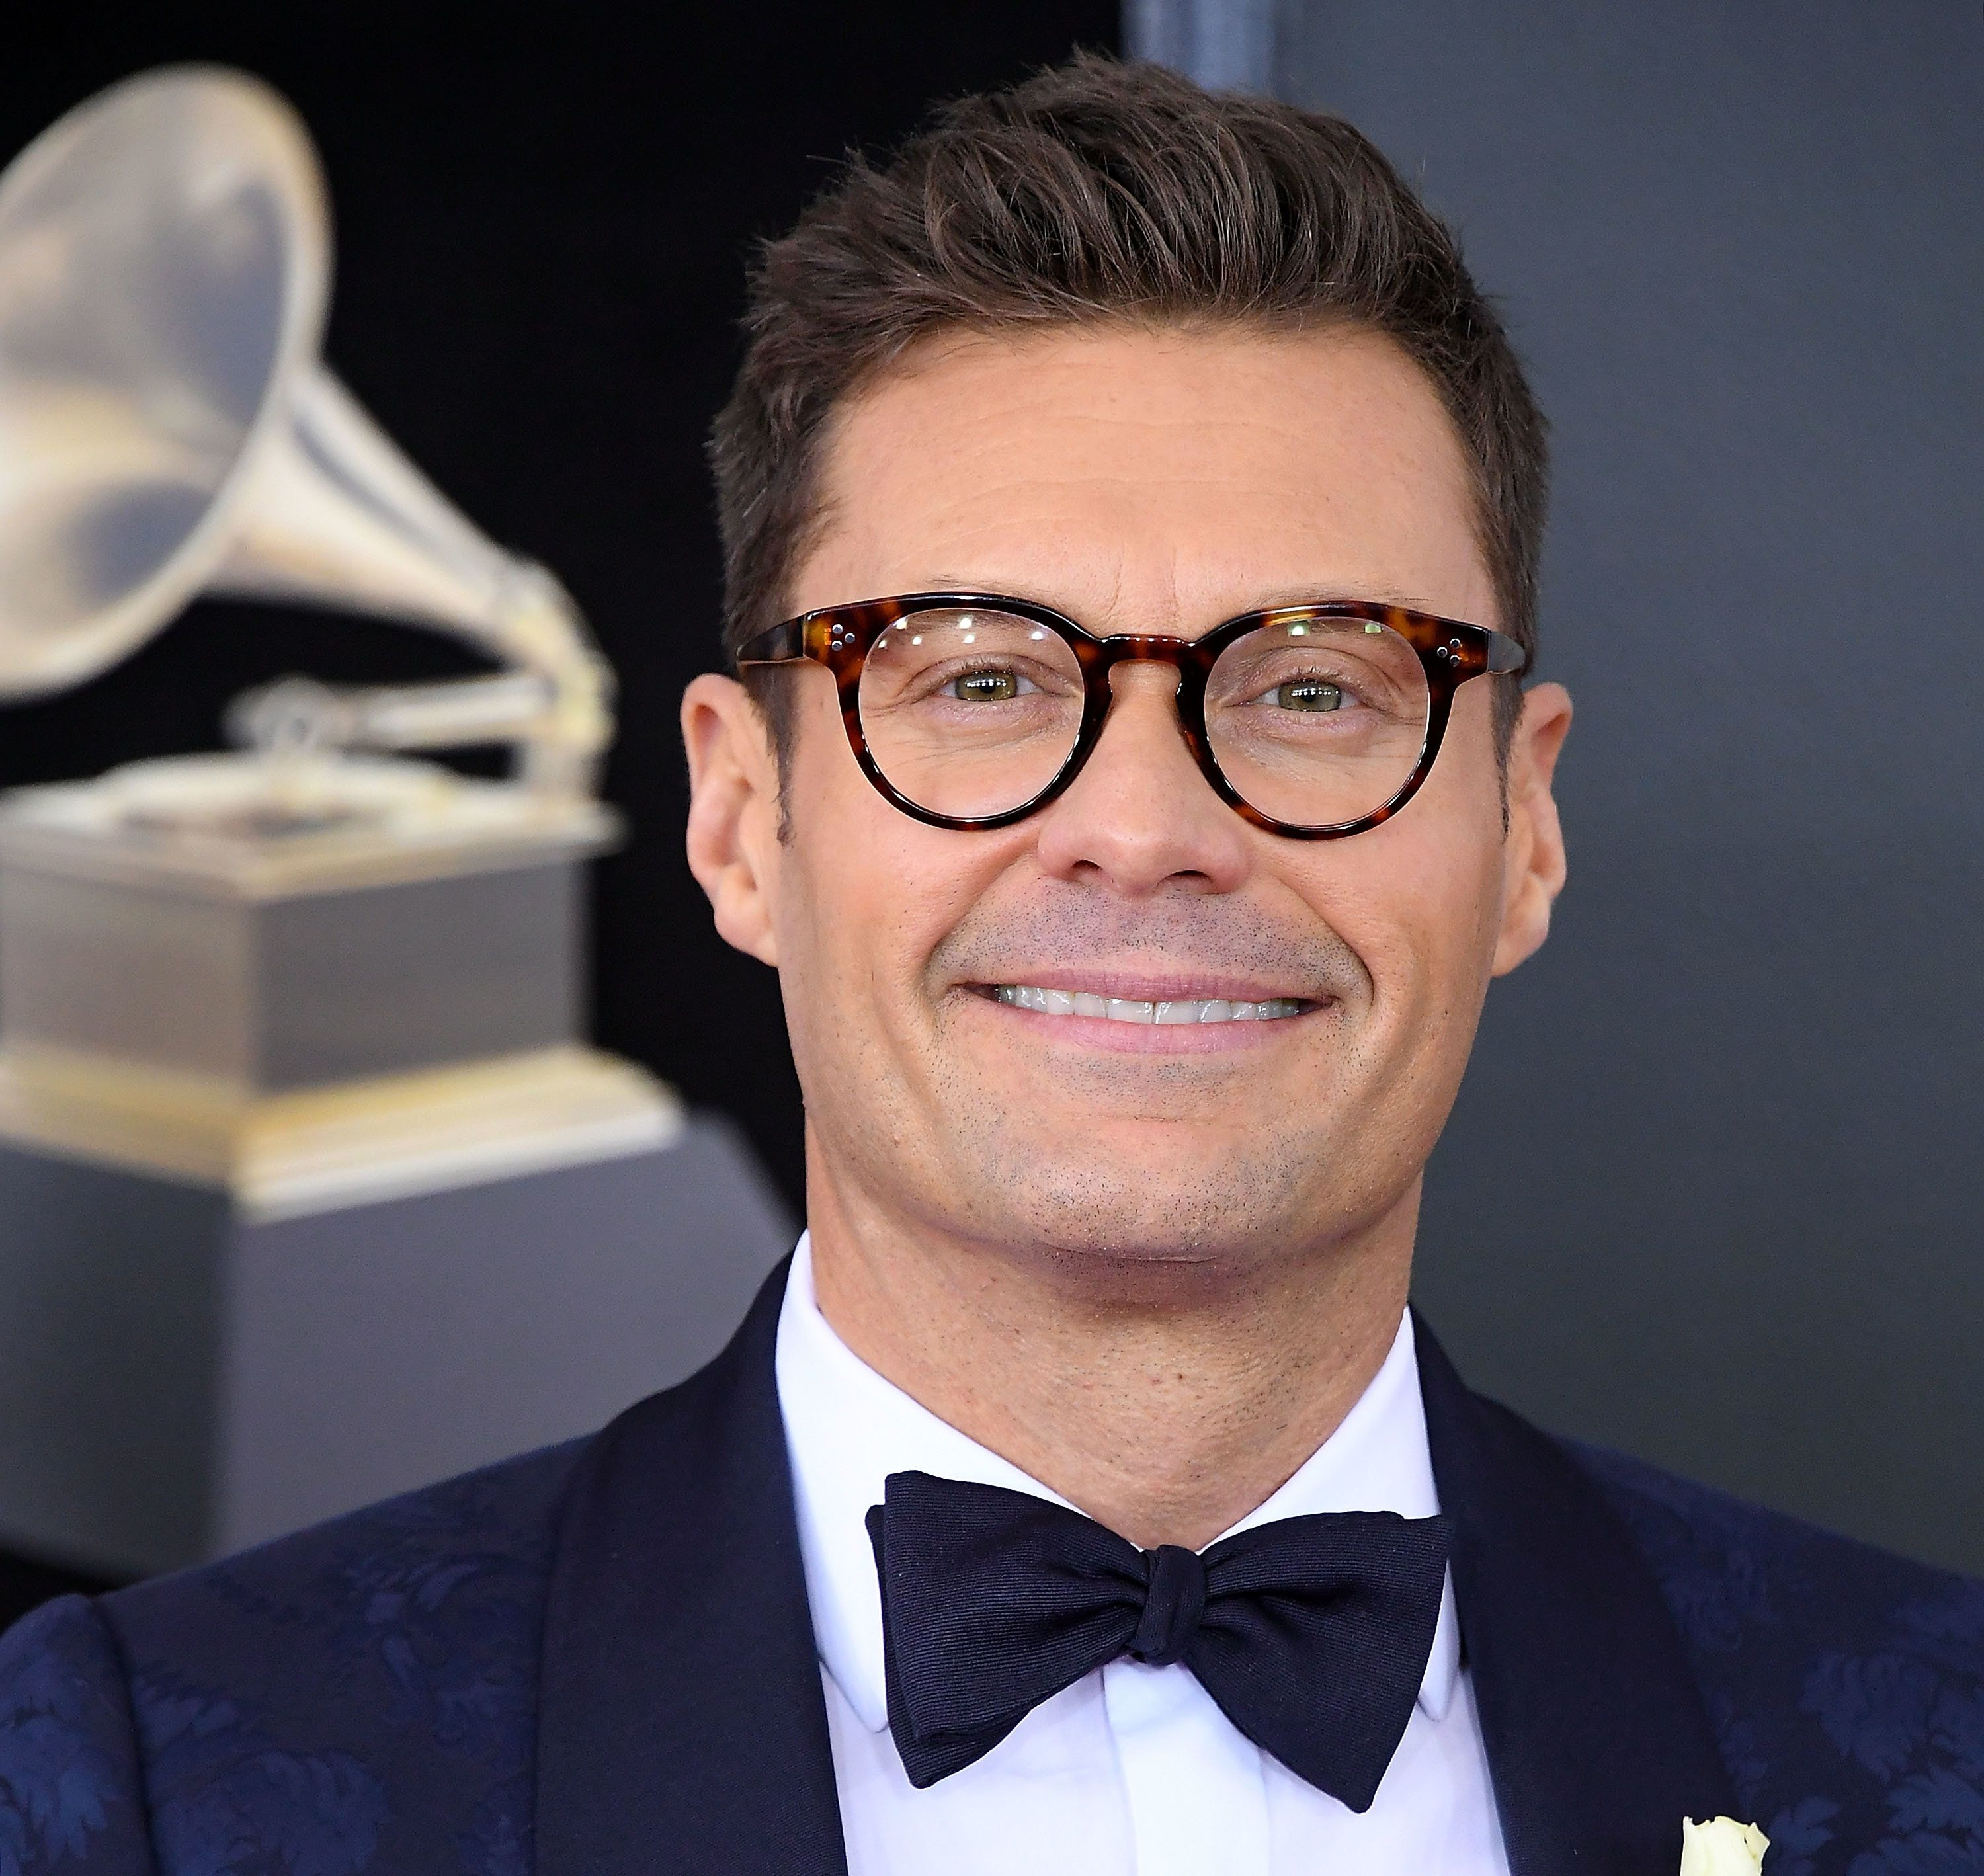 Ryan Seacrest's Former Stylist Claims He Sexually Harassed Her For